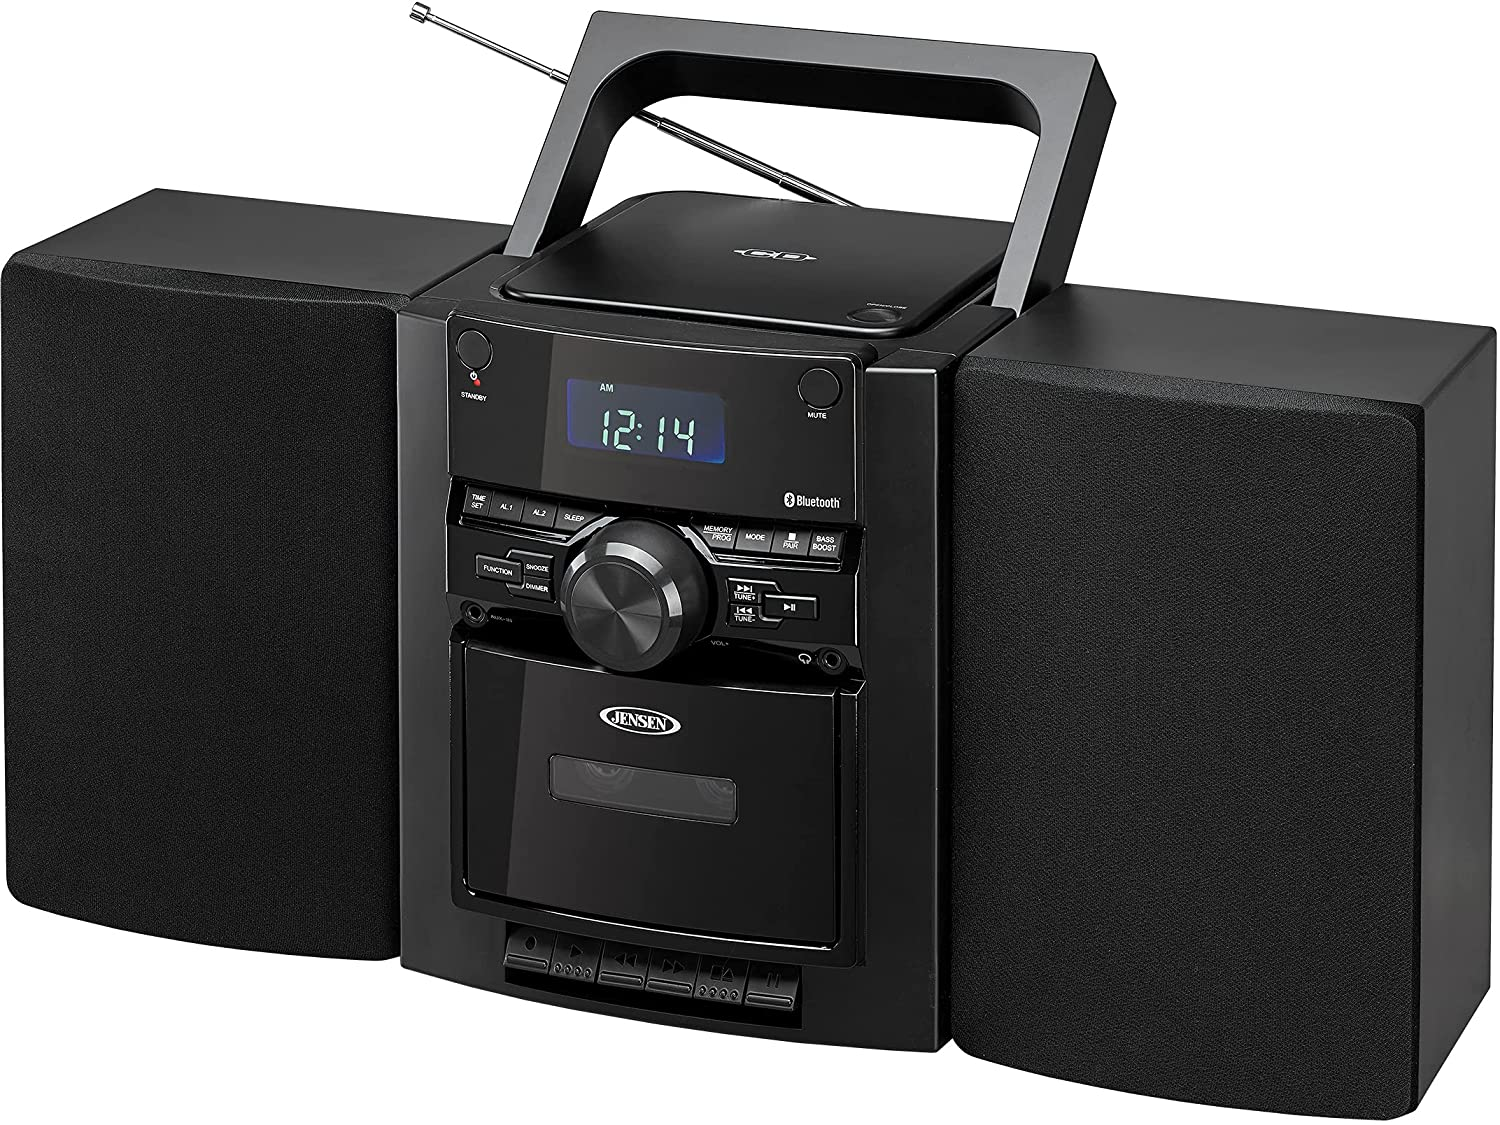 JENSEN CD-785 Portable Bluetooth CD Music System with Cassette and PLL AM/FM Radio